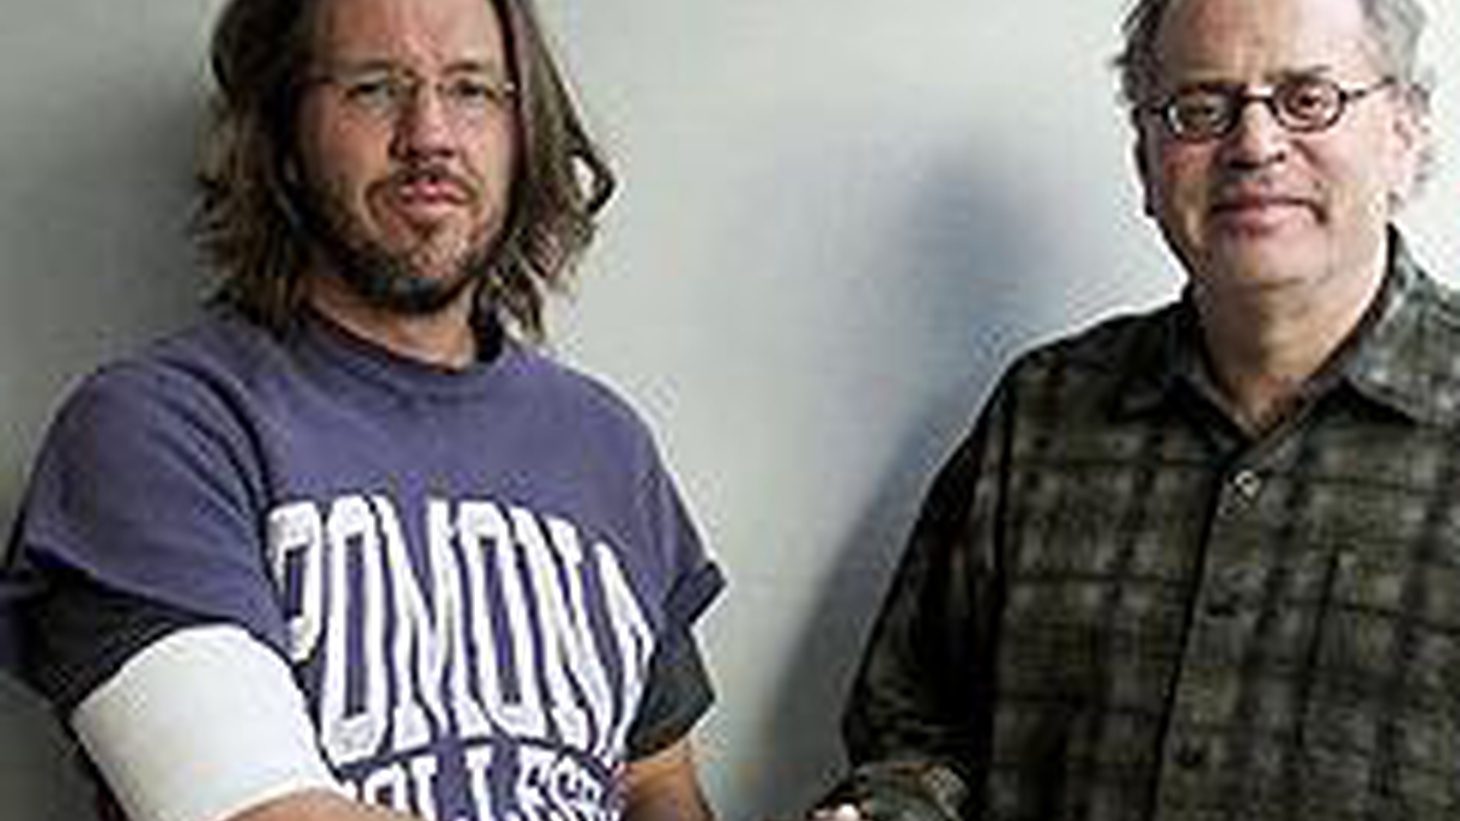 Author David Foster Wallace died on Friday leaving the literary world in astonished disbelief. Bookworm Michael Silverblatt hosts this special edition of Politics of Culture to remember him.